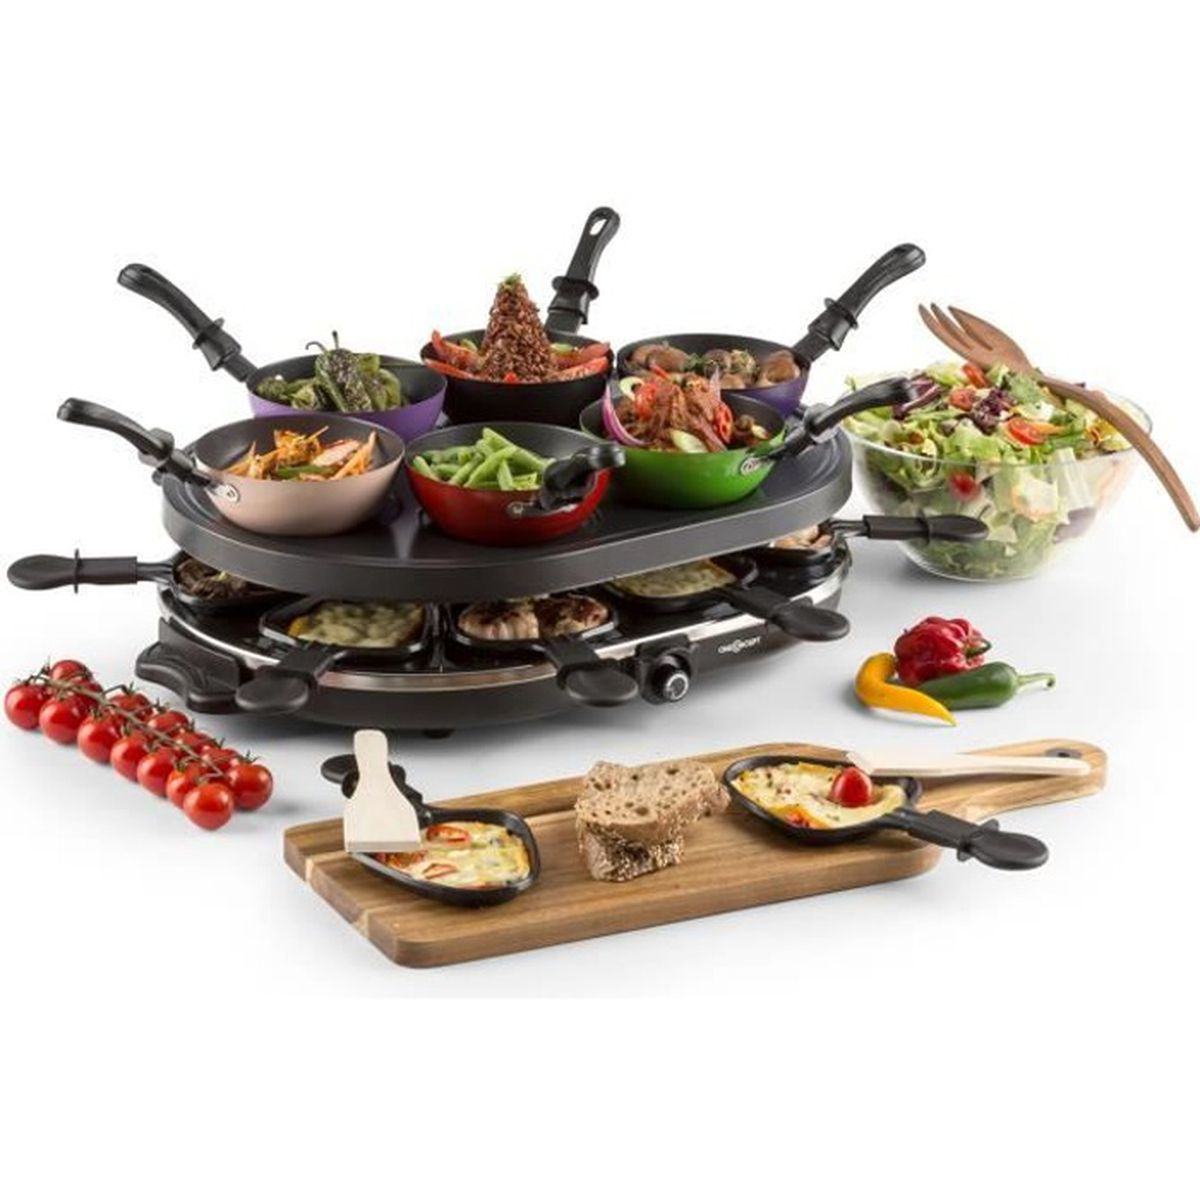 oneconcept woklette appareil raclette lectrique avec set wok party plaque de grill. Black Bedroom Furniture Sets. Home Design Ideas